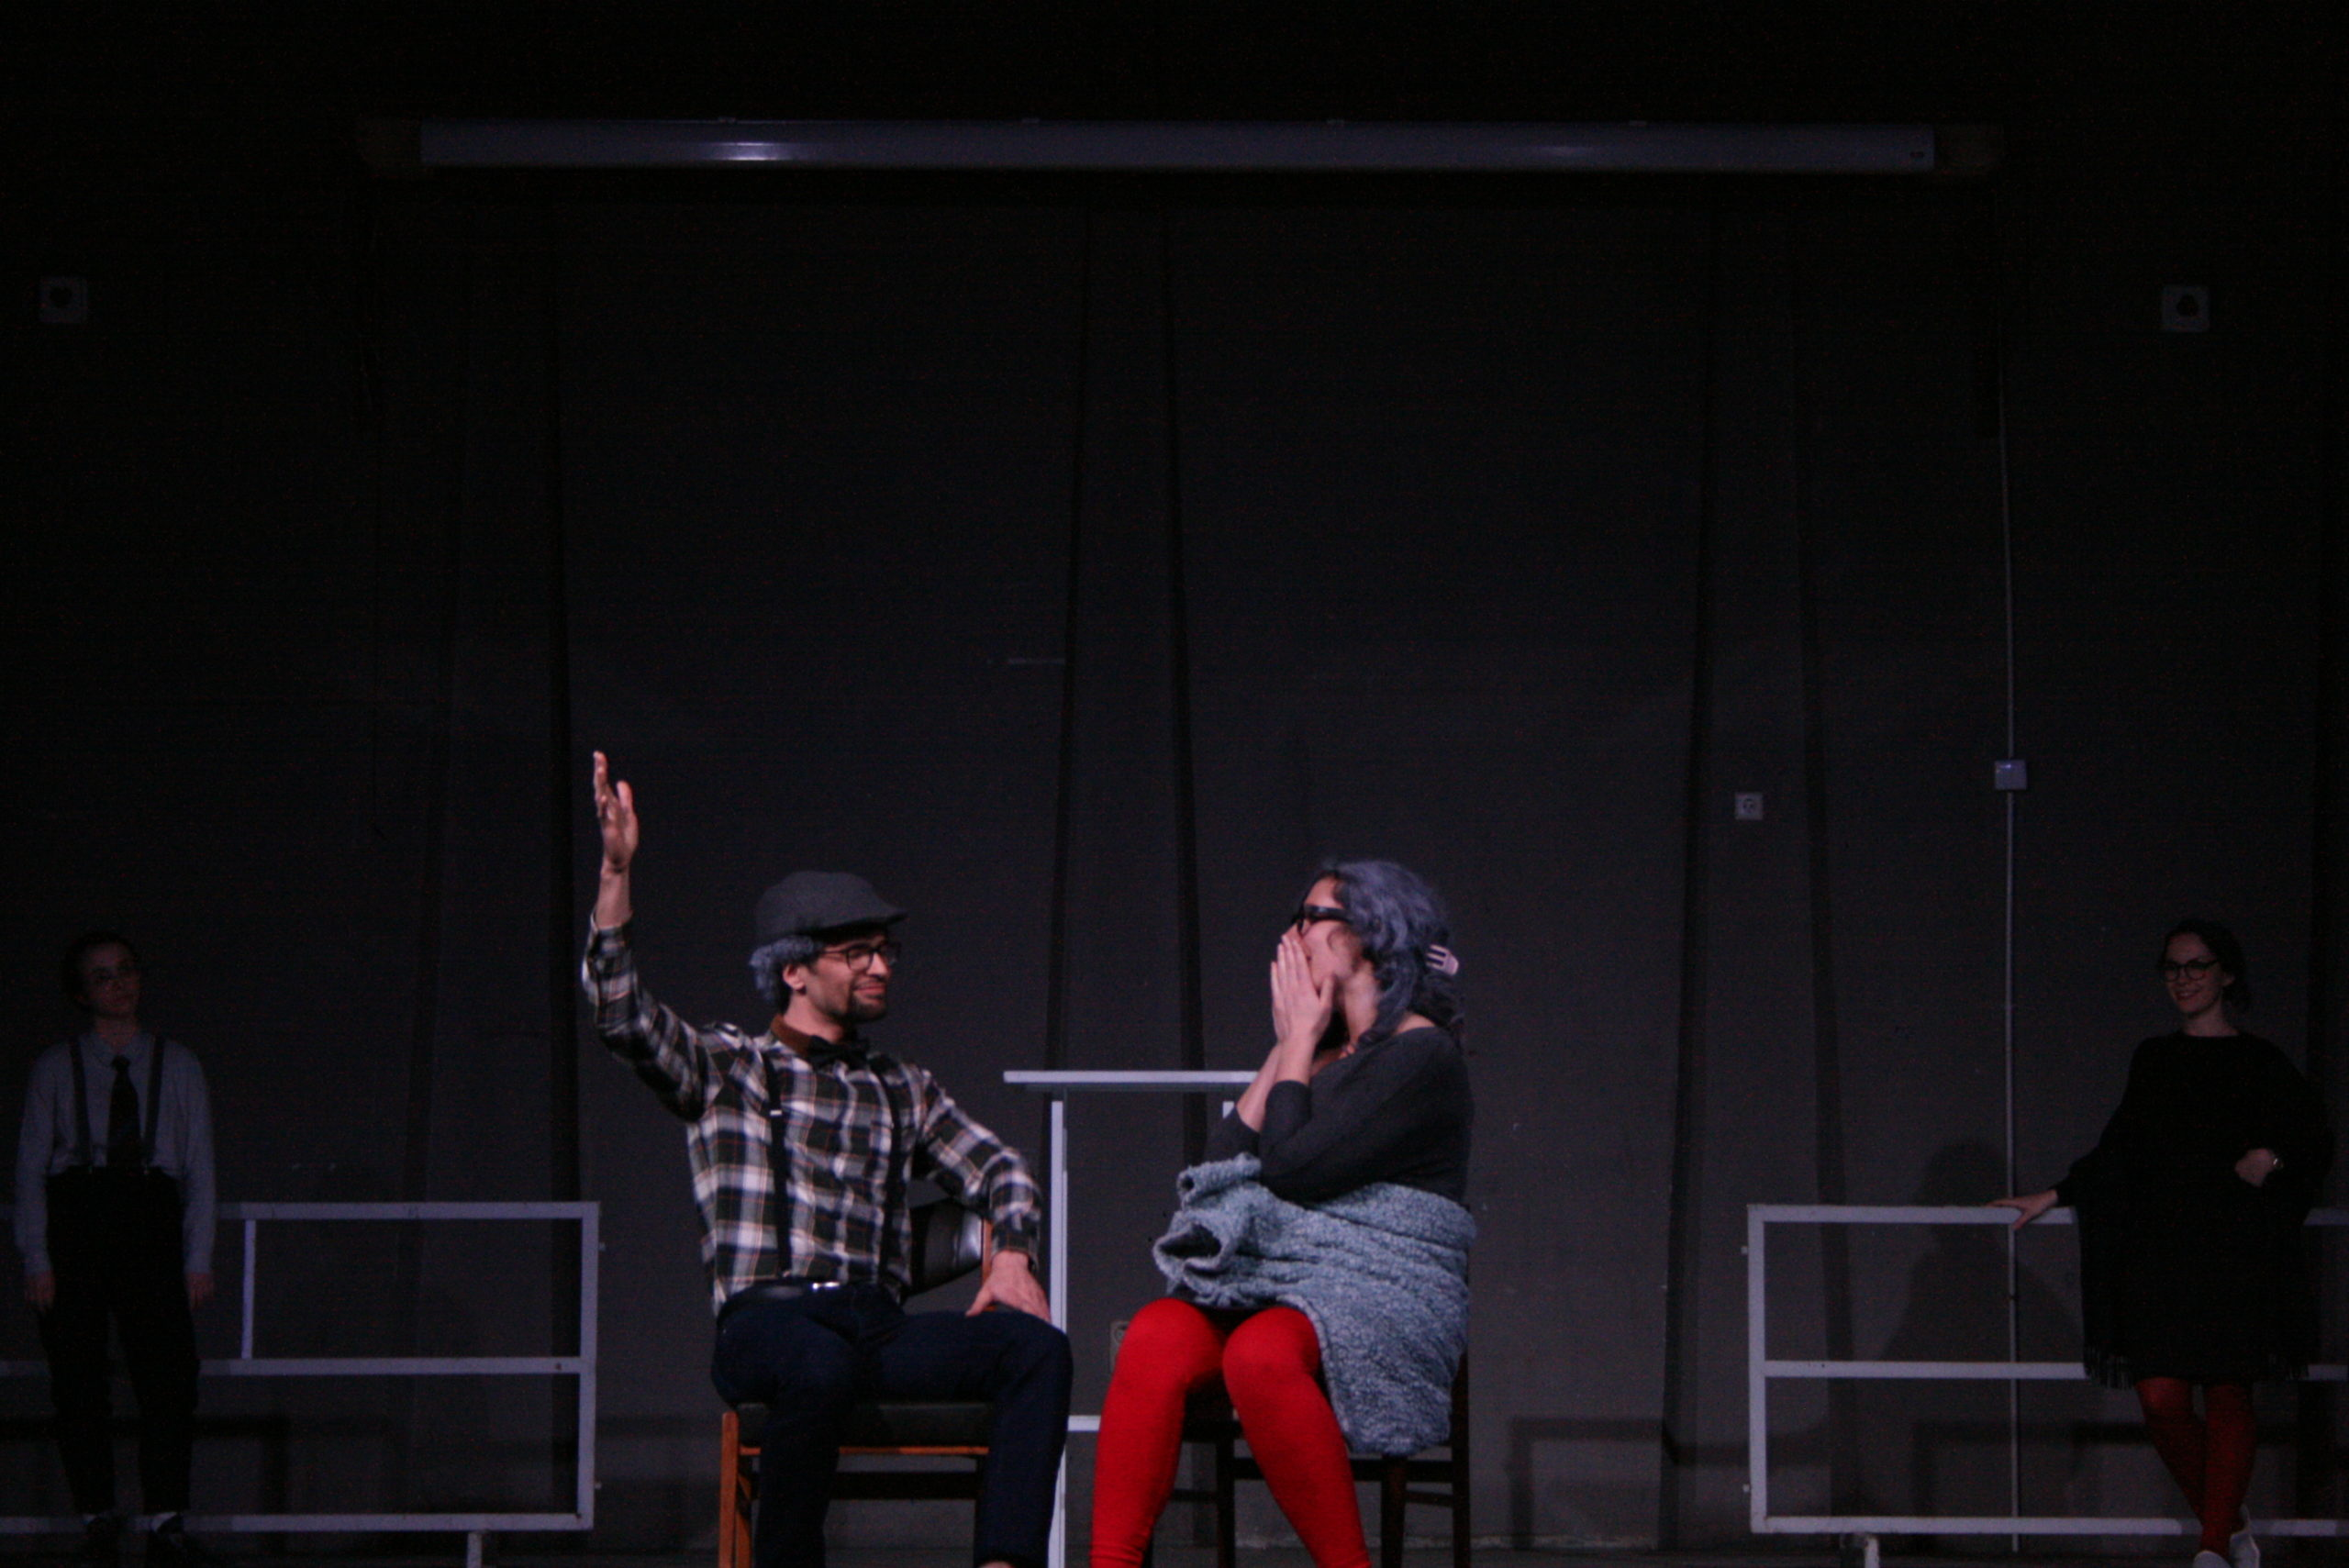 """Photo from the show """"The Chairs"""". A male and a female actor sit on chairs. He has is right arm up and she is touching her face in shock"""